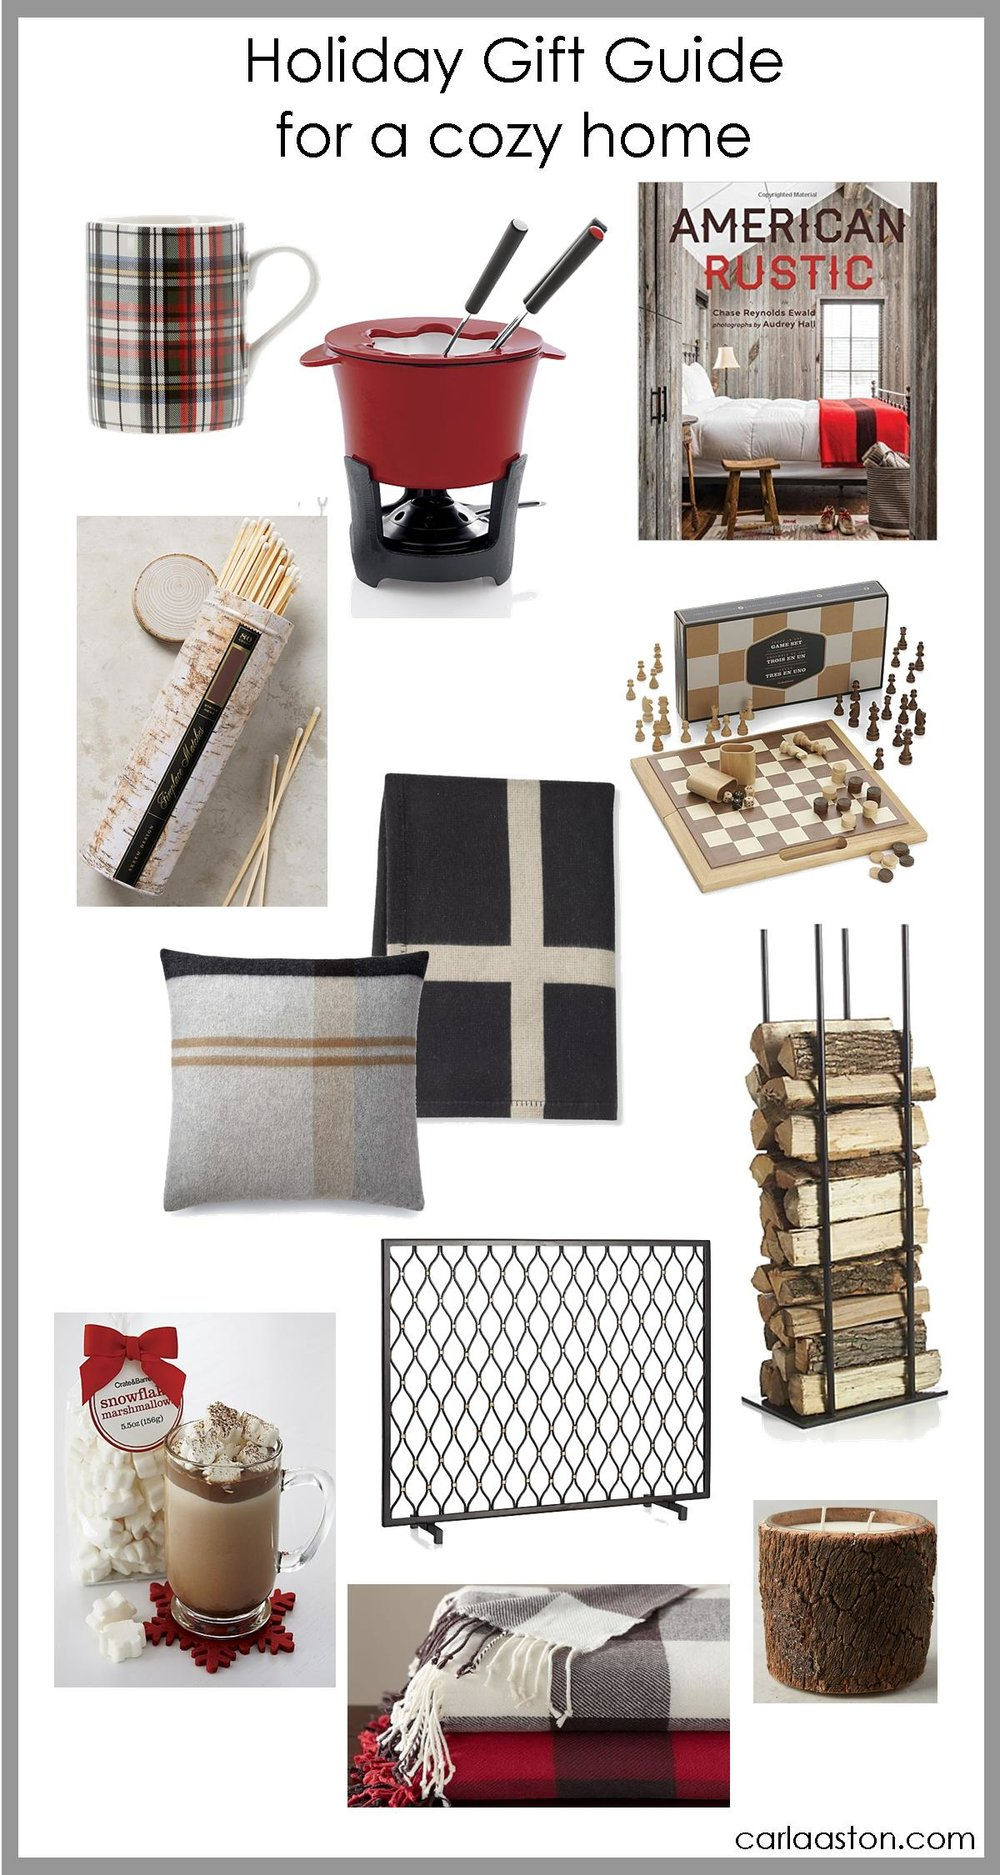 Click through for this gift guide for a cozy home!